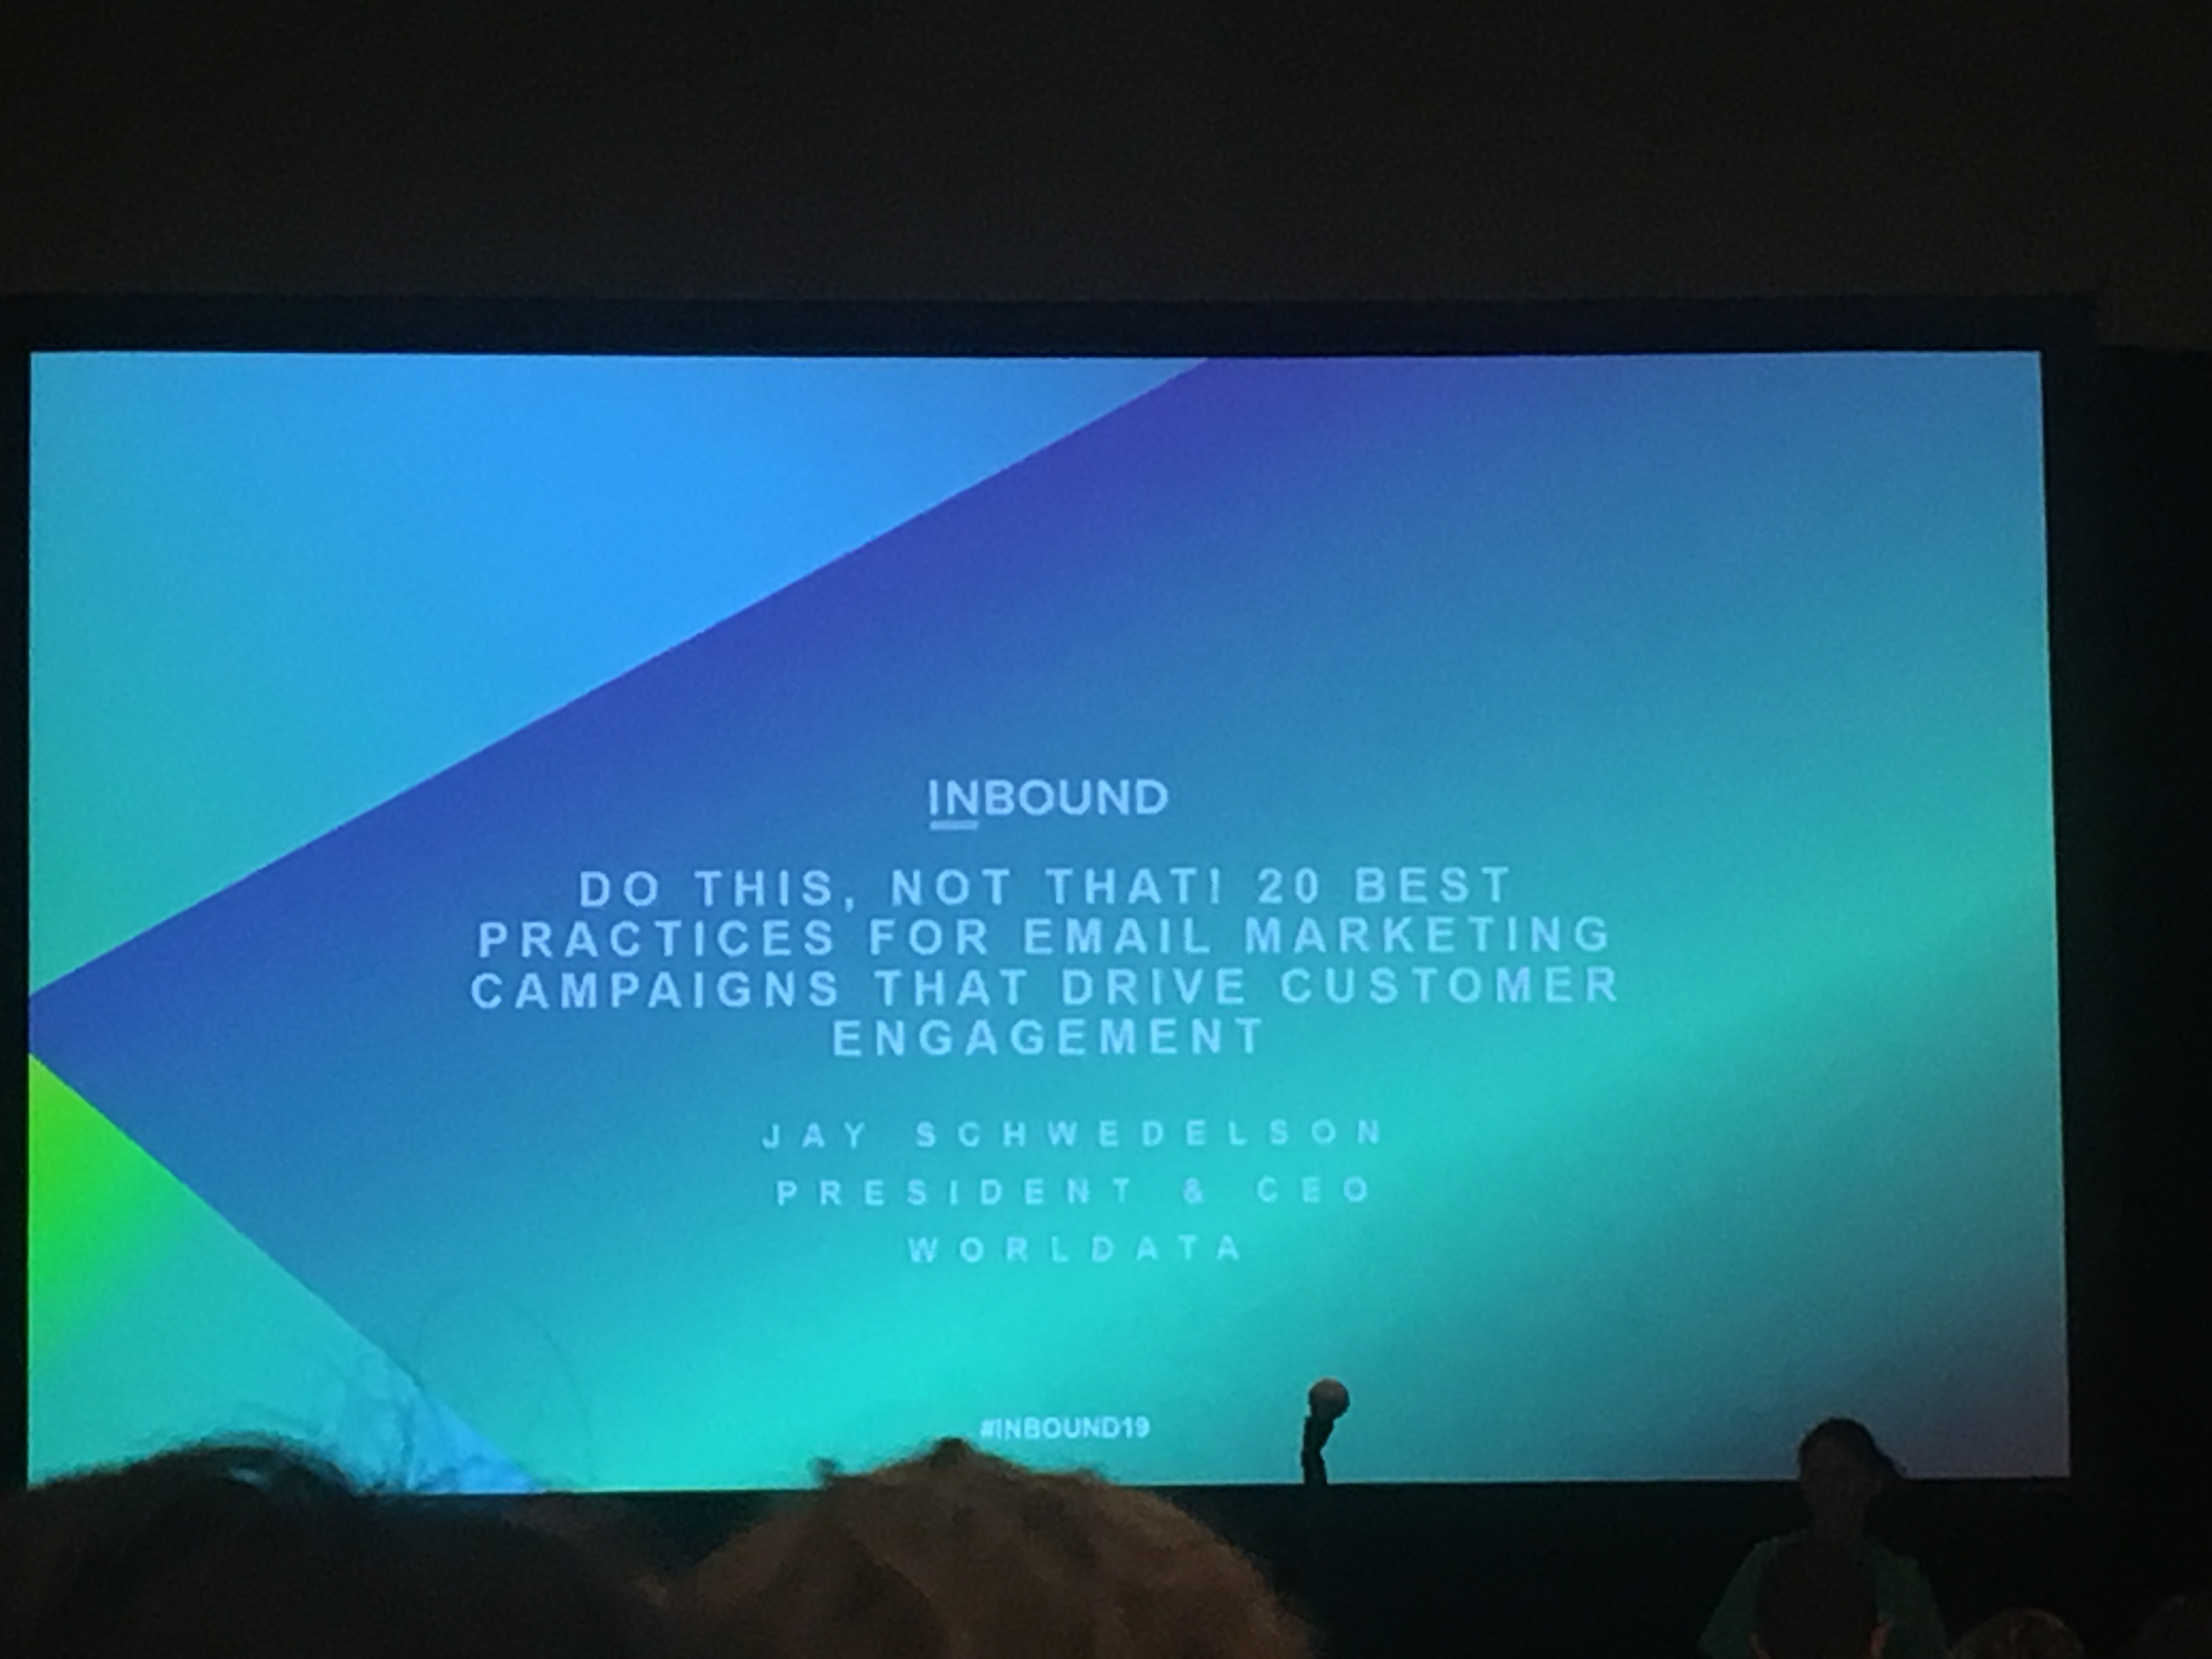 Live @Inbound2019 - Do This, Not That! The Best Practices for Email Marketing Campaigns That Drive Customer Engagement